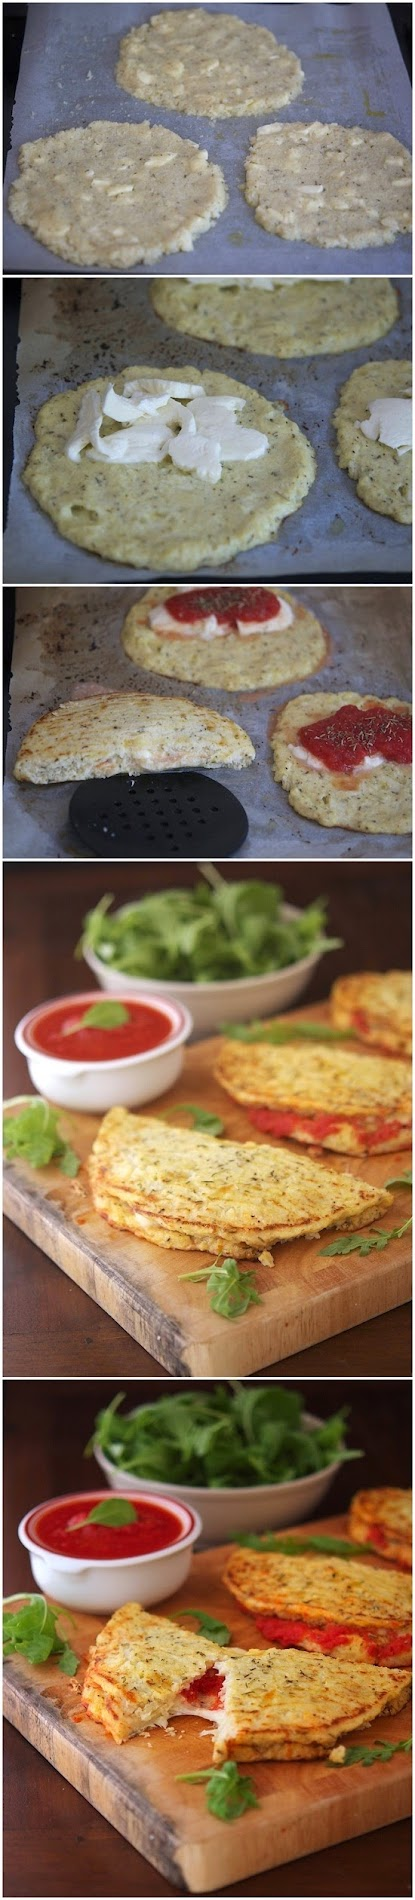 How To Make Cauliflower Crust Calzone